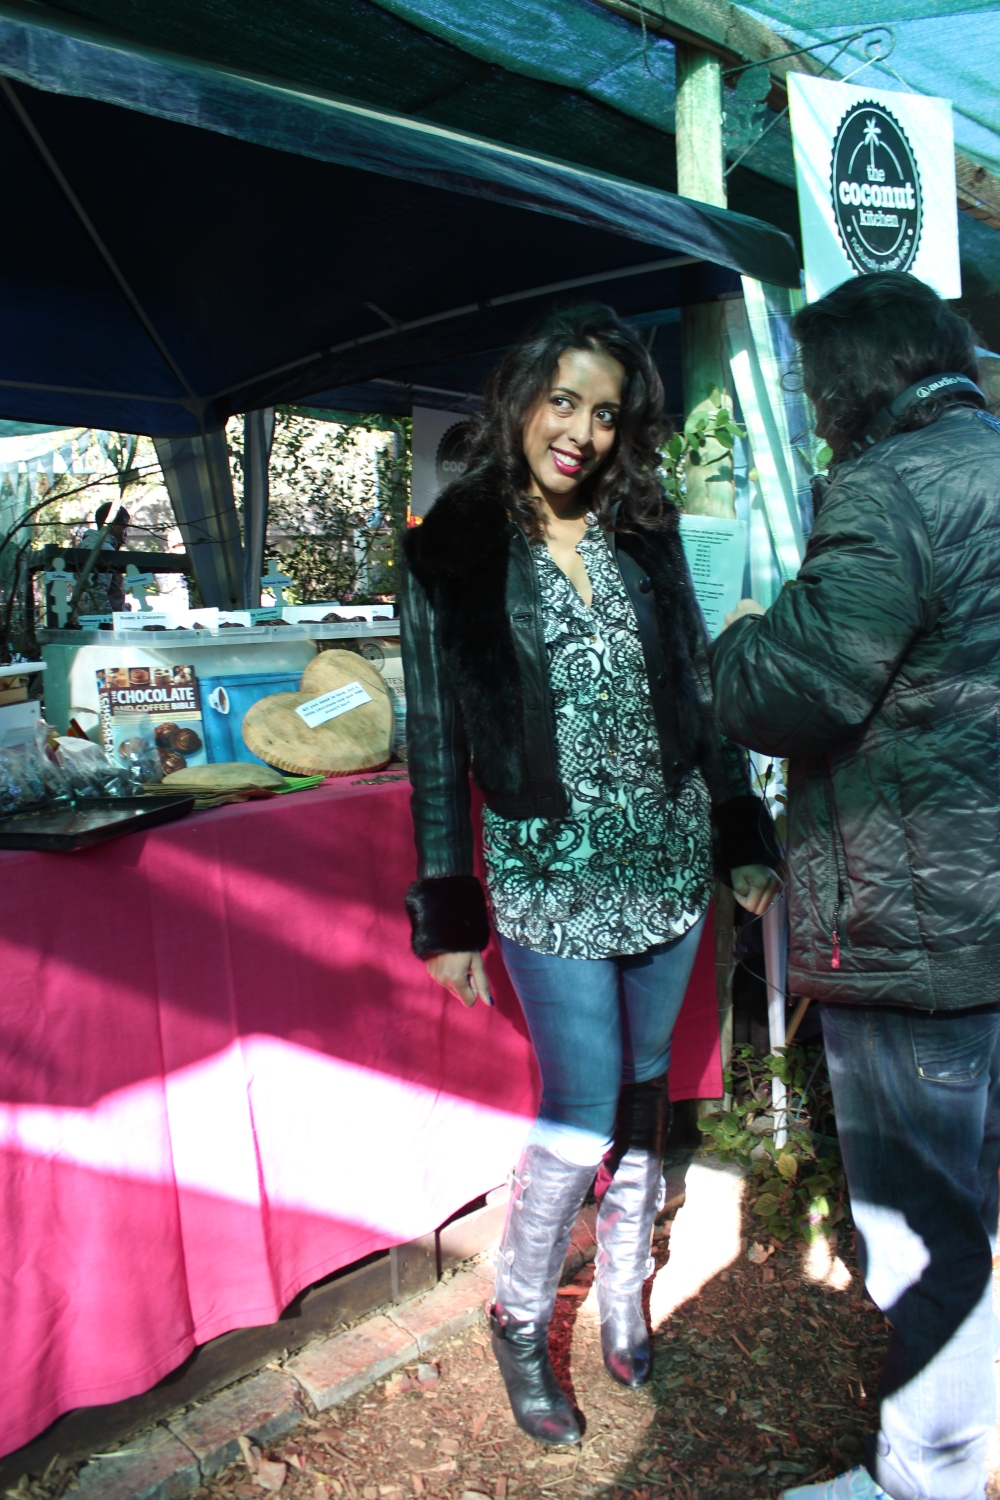 Yudhika visits the Fourways Farmers Market on SABC 2's Mela...